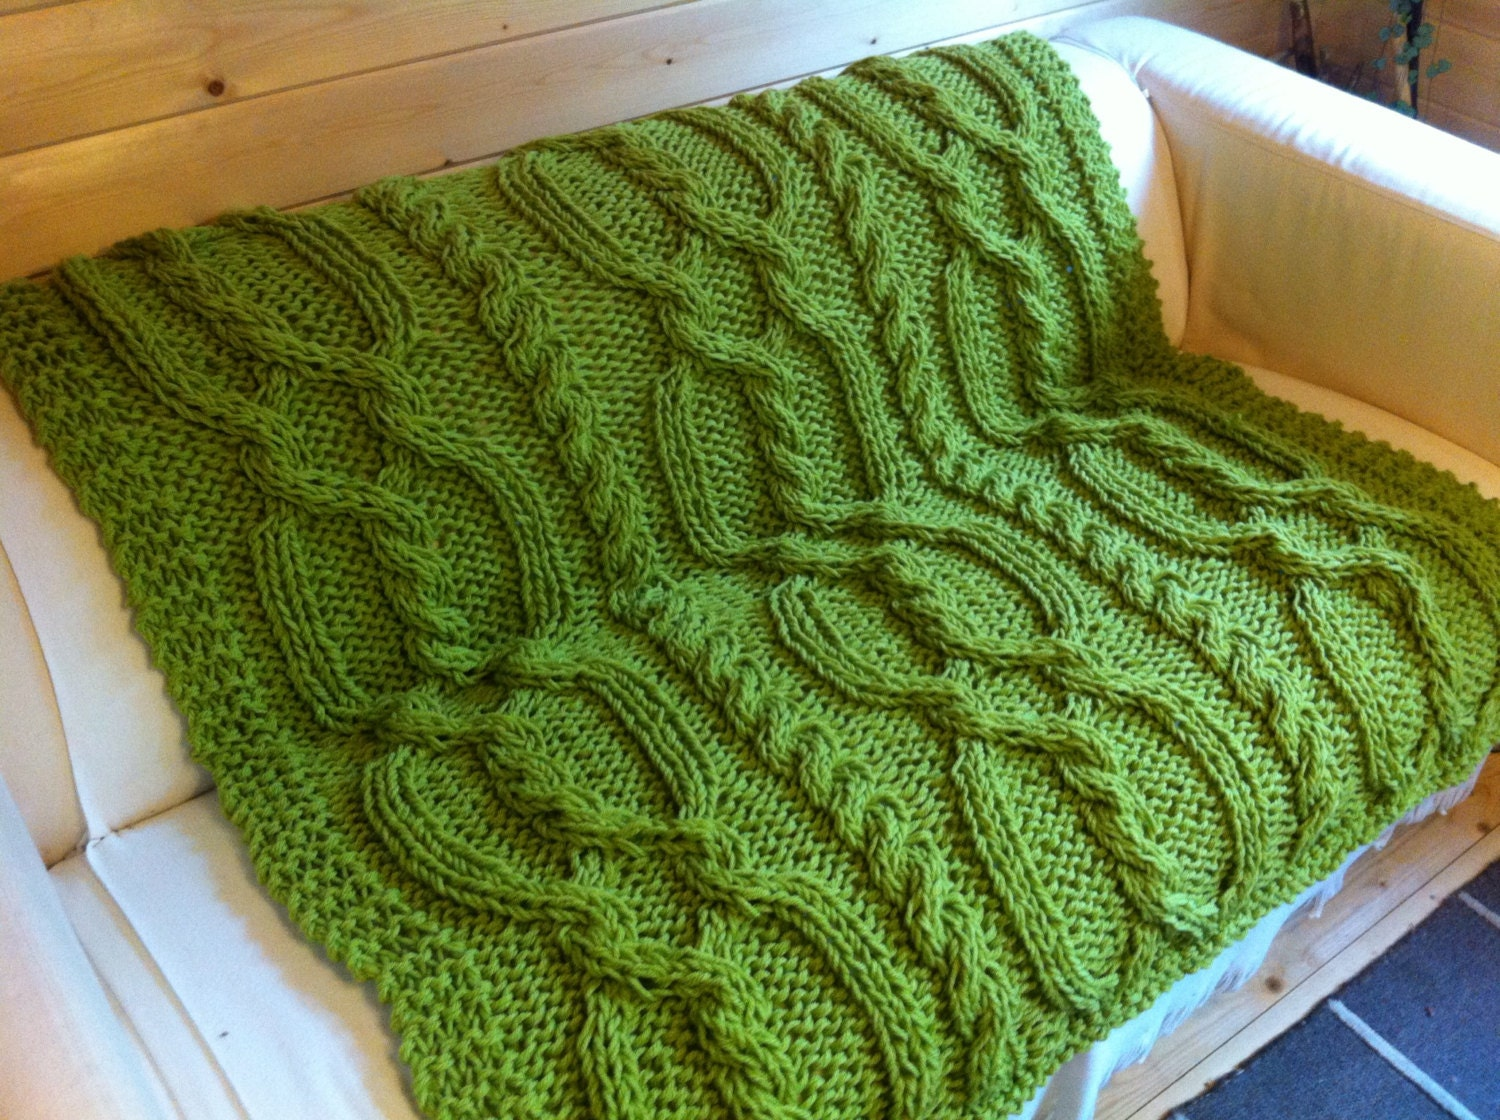 Knitting Pattern For Throw With Cables : Snuggly Cable Blanket / Throw. Knitting pattern by DaisyGrayKnits